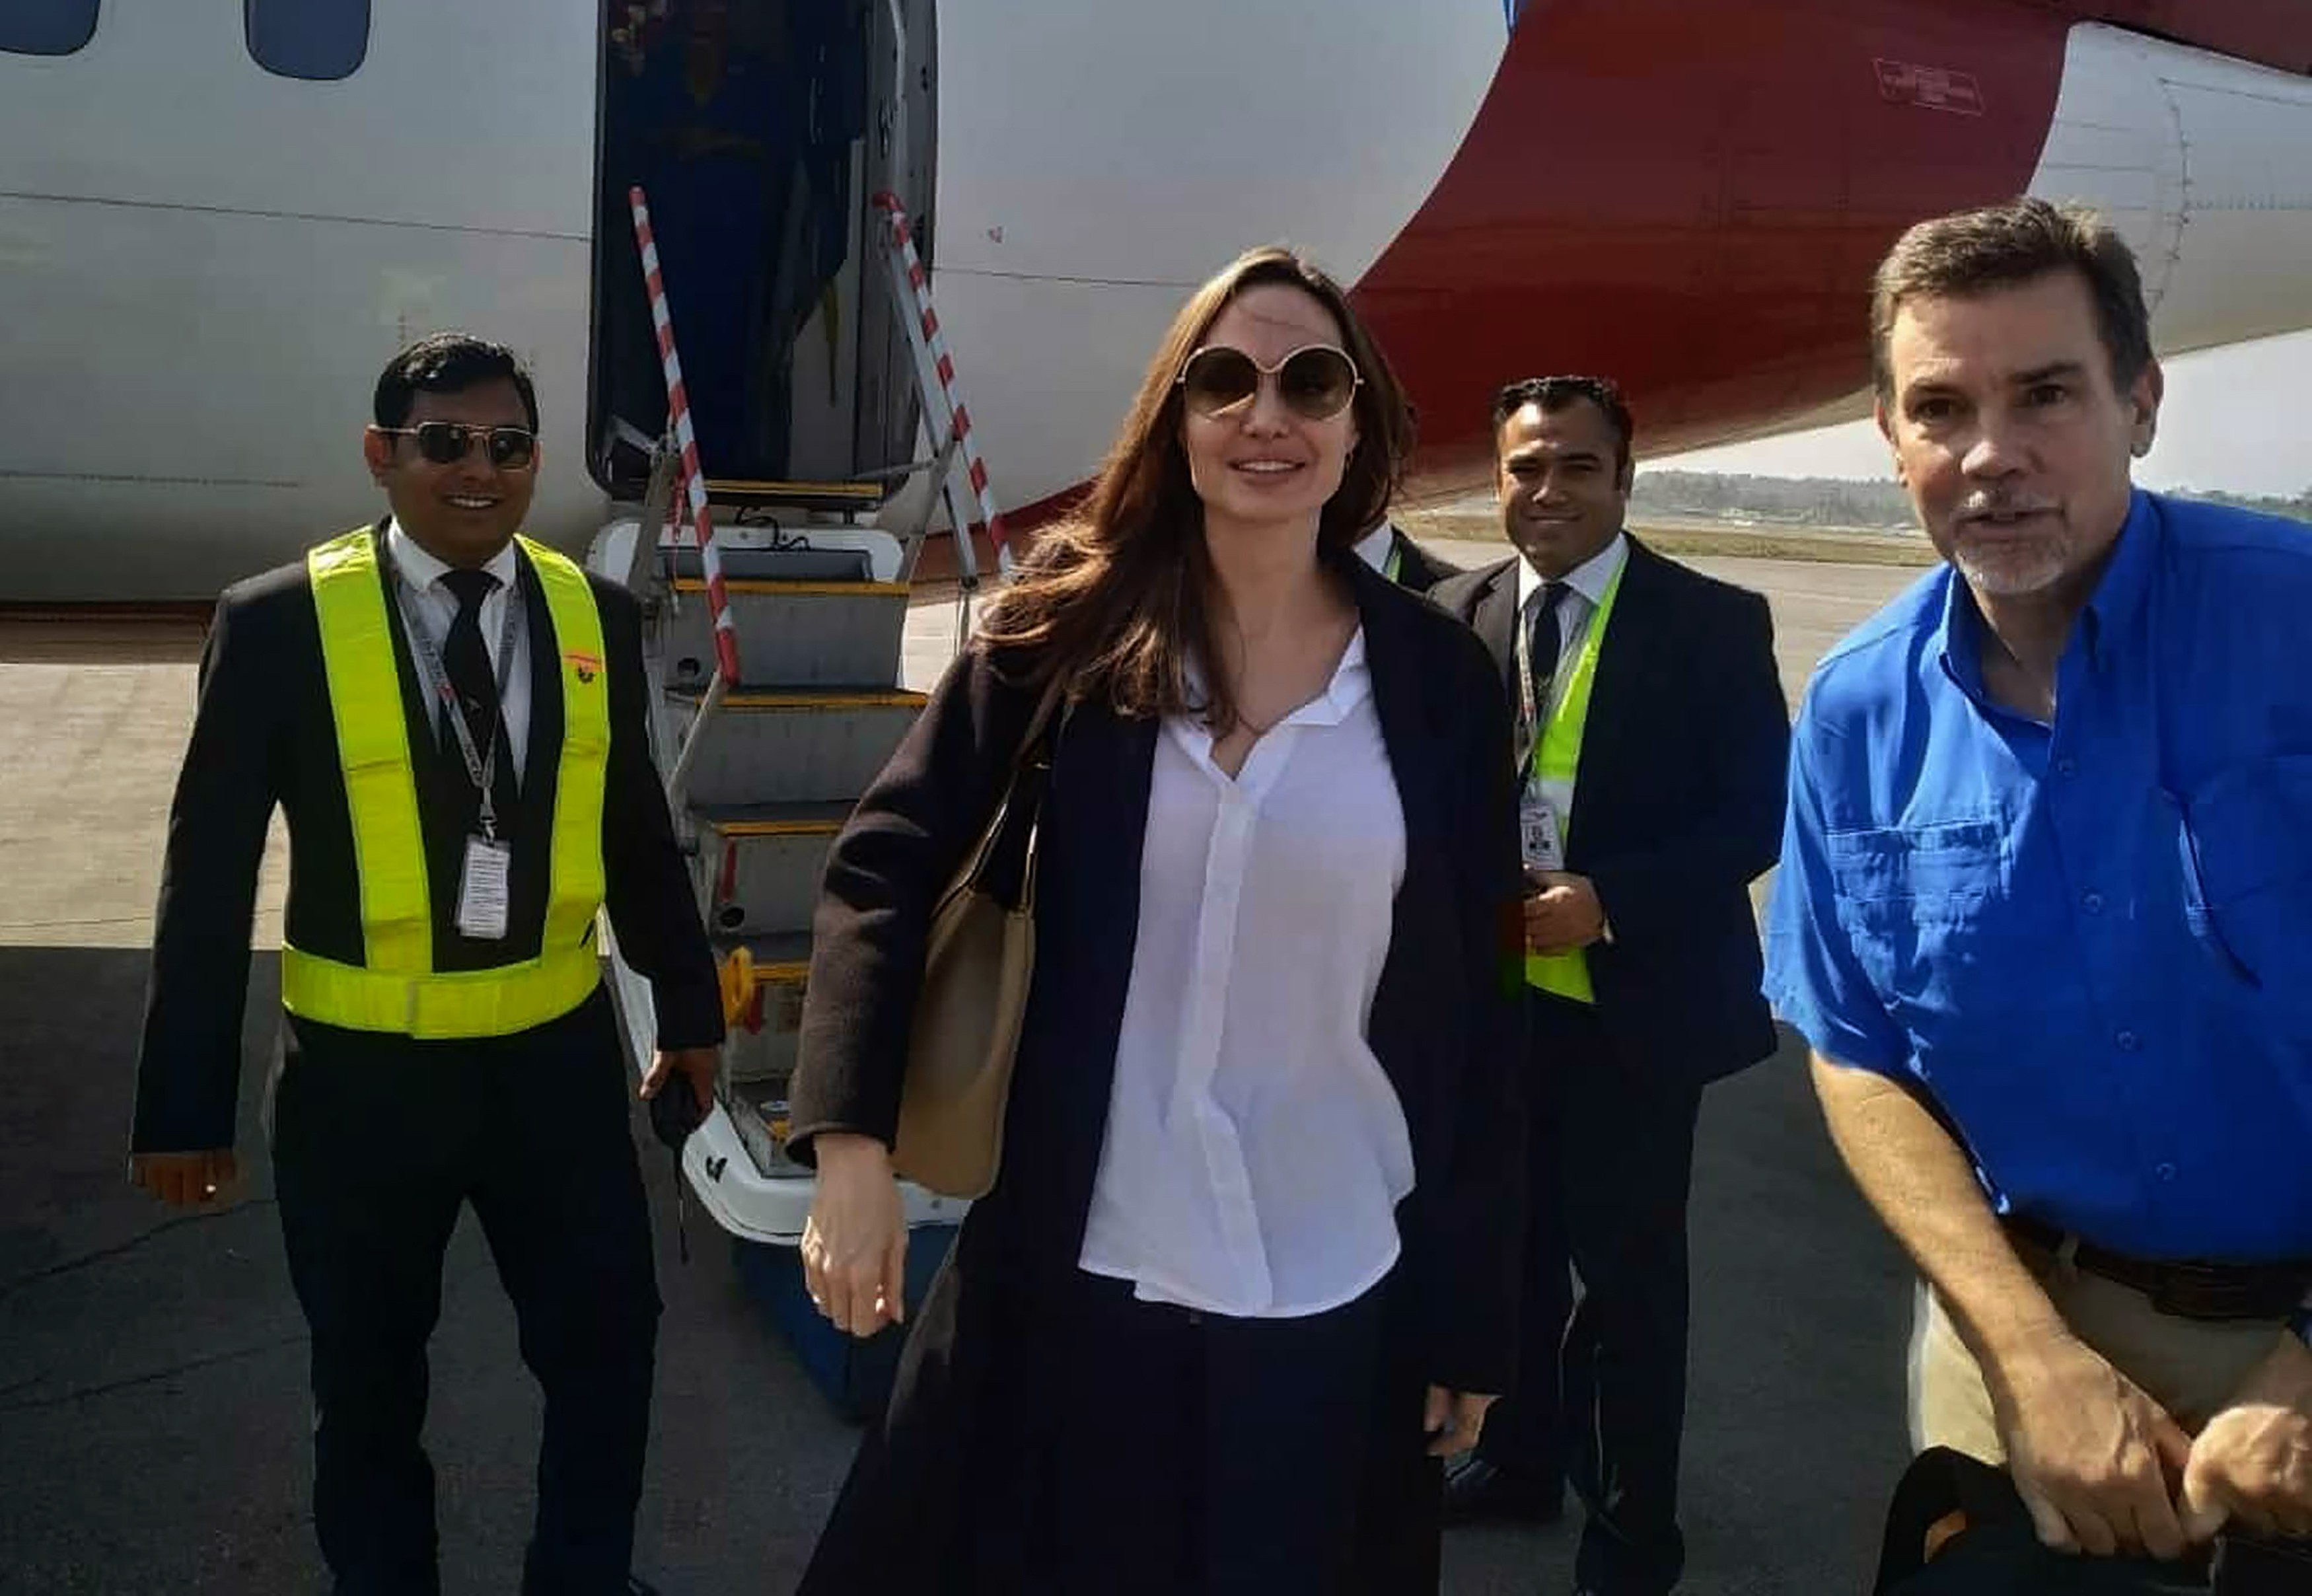 US actress and humanitarian Angelina Jolie, a special envoy for the United Nations High Commissioner for Refugees (UNHCR), arrives at the airport in Cox's Bazar in southern Bangladesh on February 4, 2019, ahead of a visit to nearby Rohingya refugee camps. - UNHCR Special Envoy Angelina Jolie is visiting the refugee camps for Rohingya communities in southern Bangladesh who have fled violence in neighbouring Myanmar. (Photo by      STR/AFP/Getty Images)